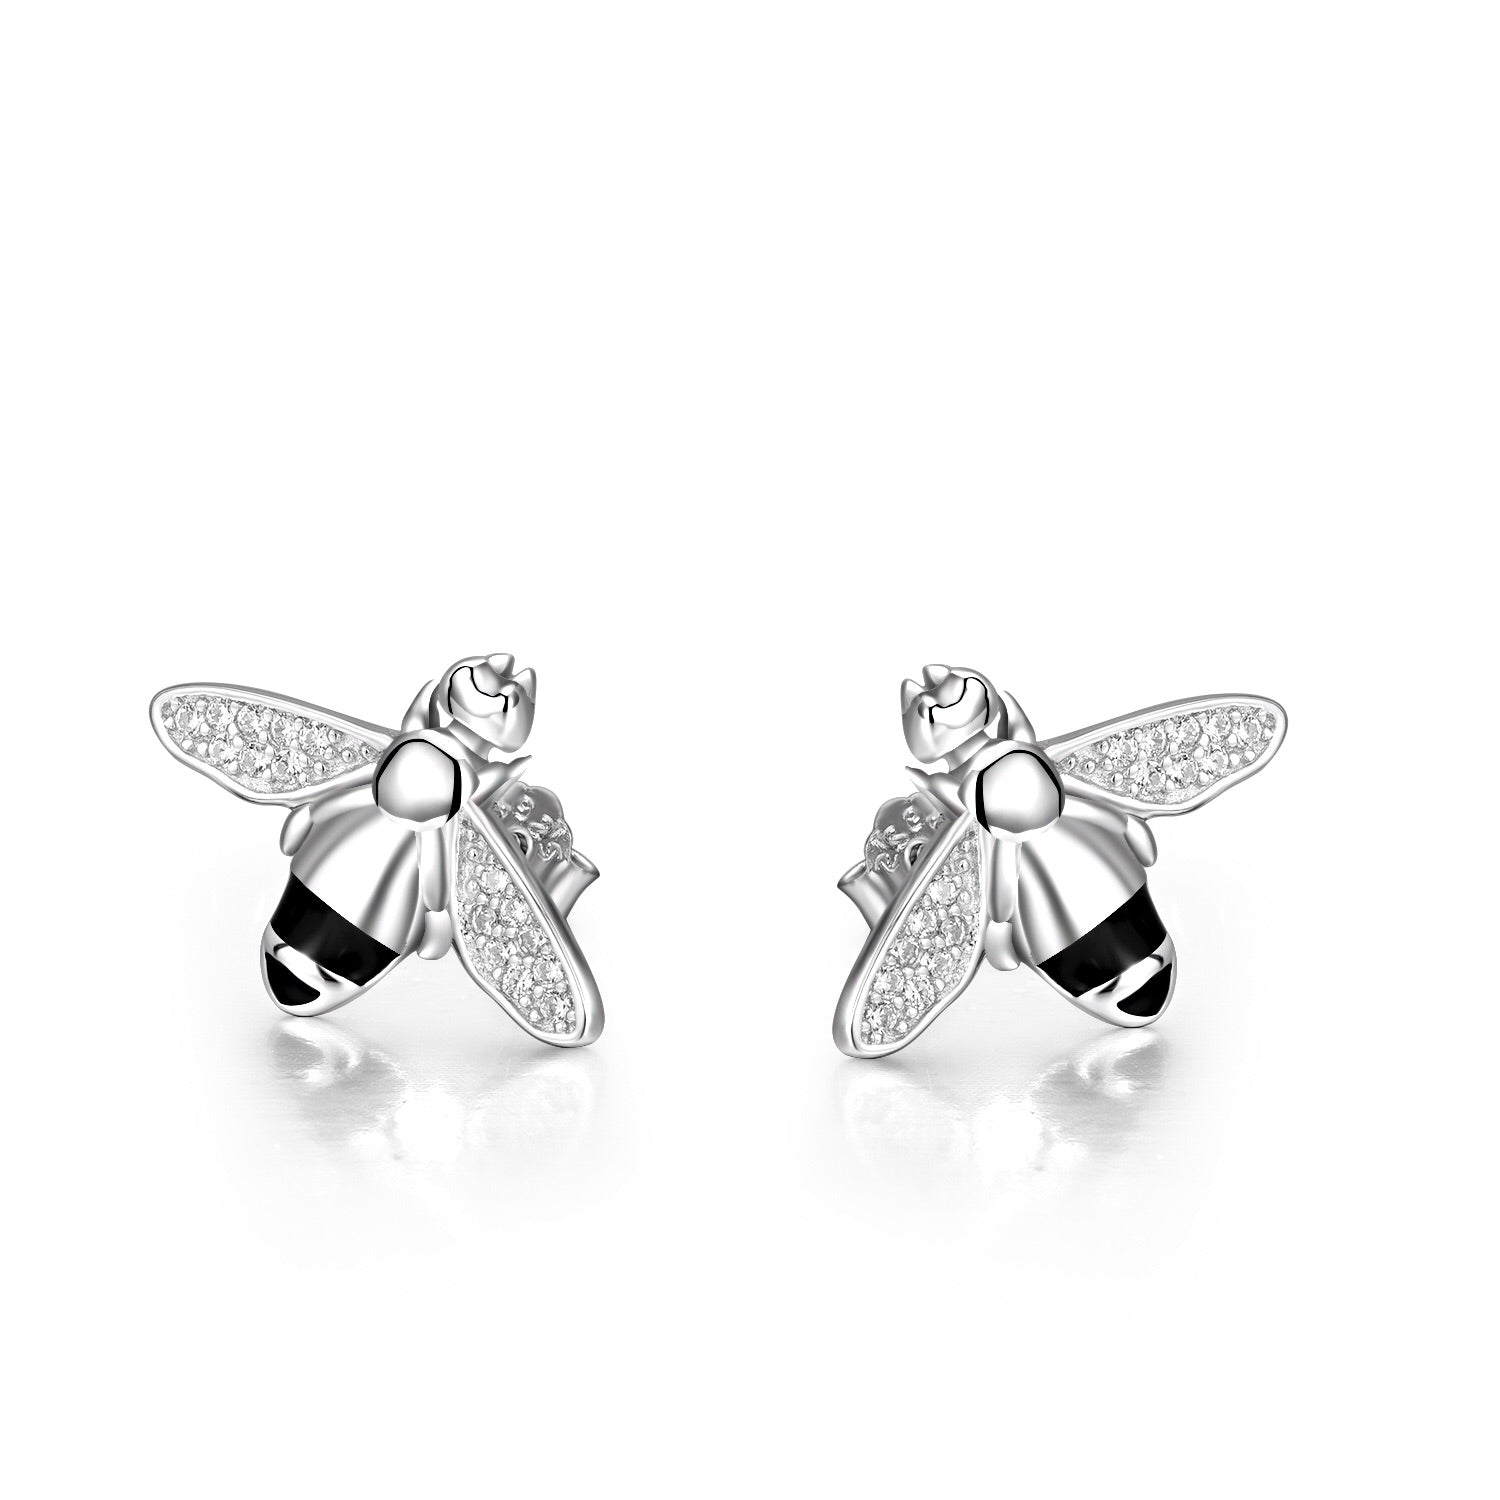 earrings round stud zirconia cubic large silver white with sterling nuru